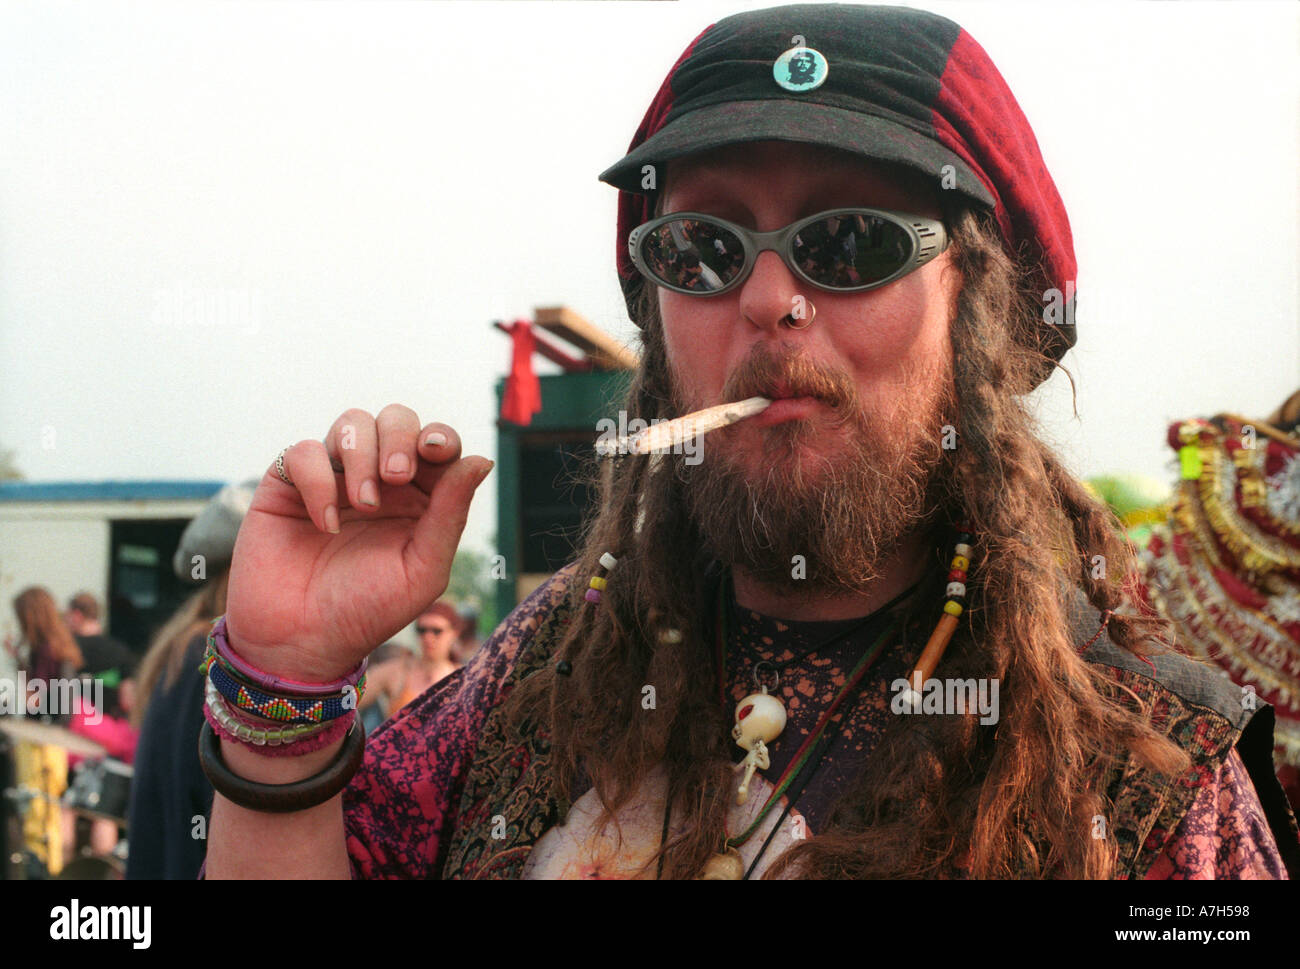 Smoking a large joint at annual Cannabis festival in London. Stock Photo